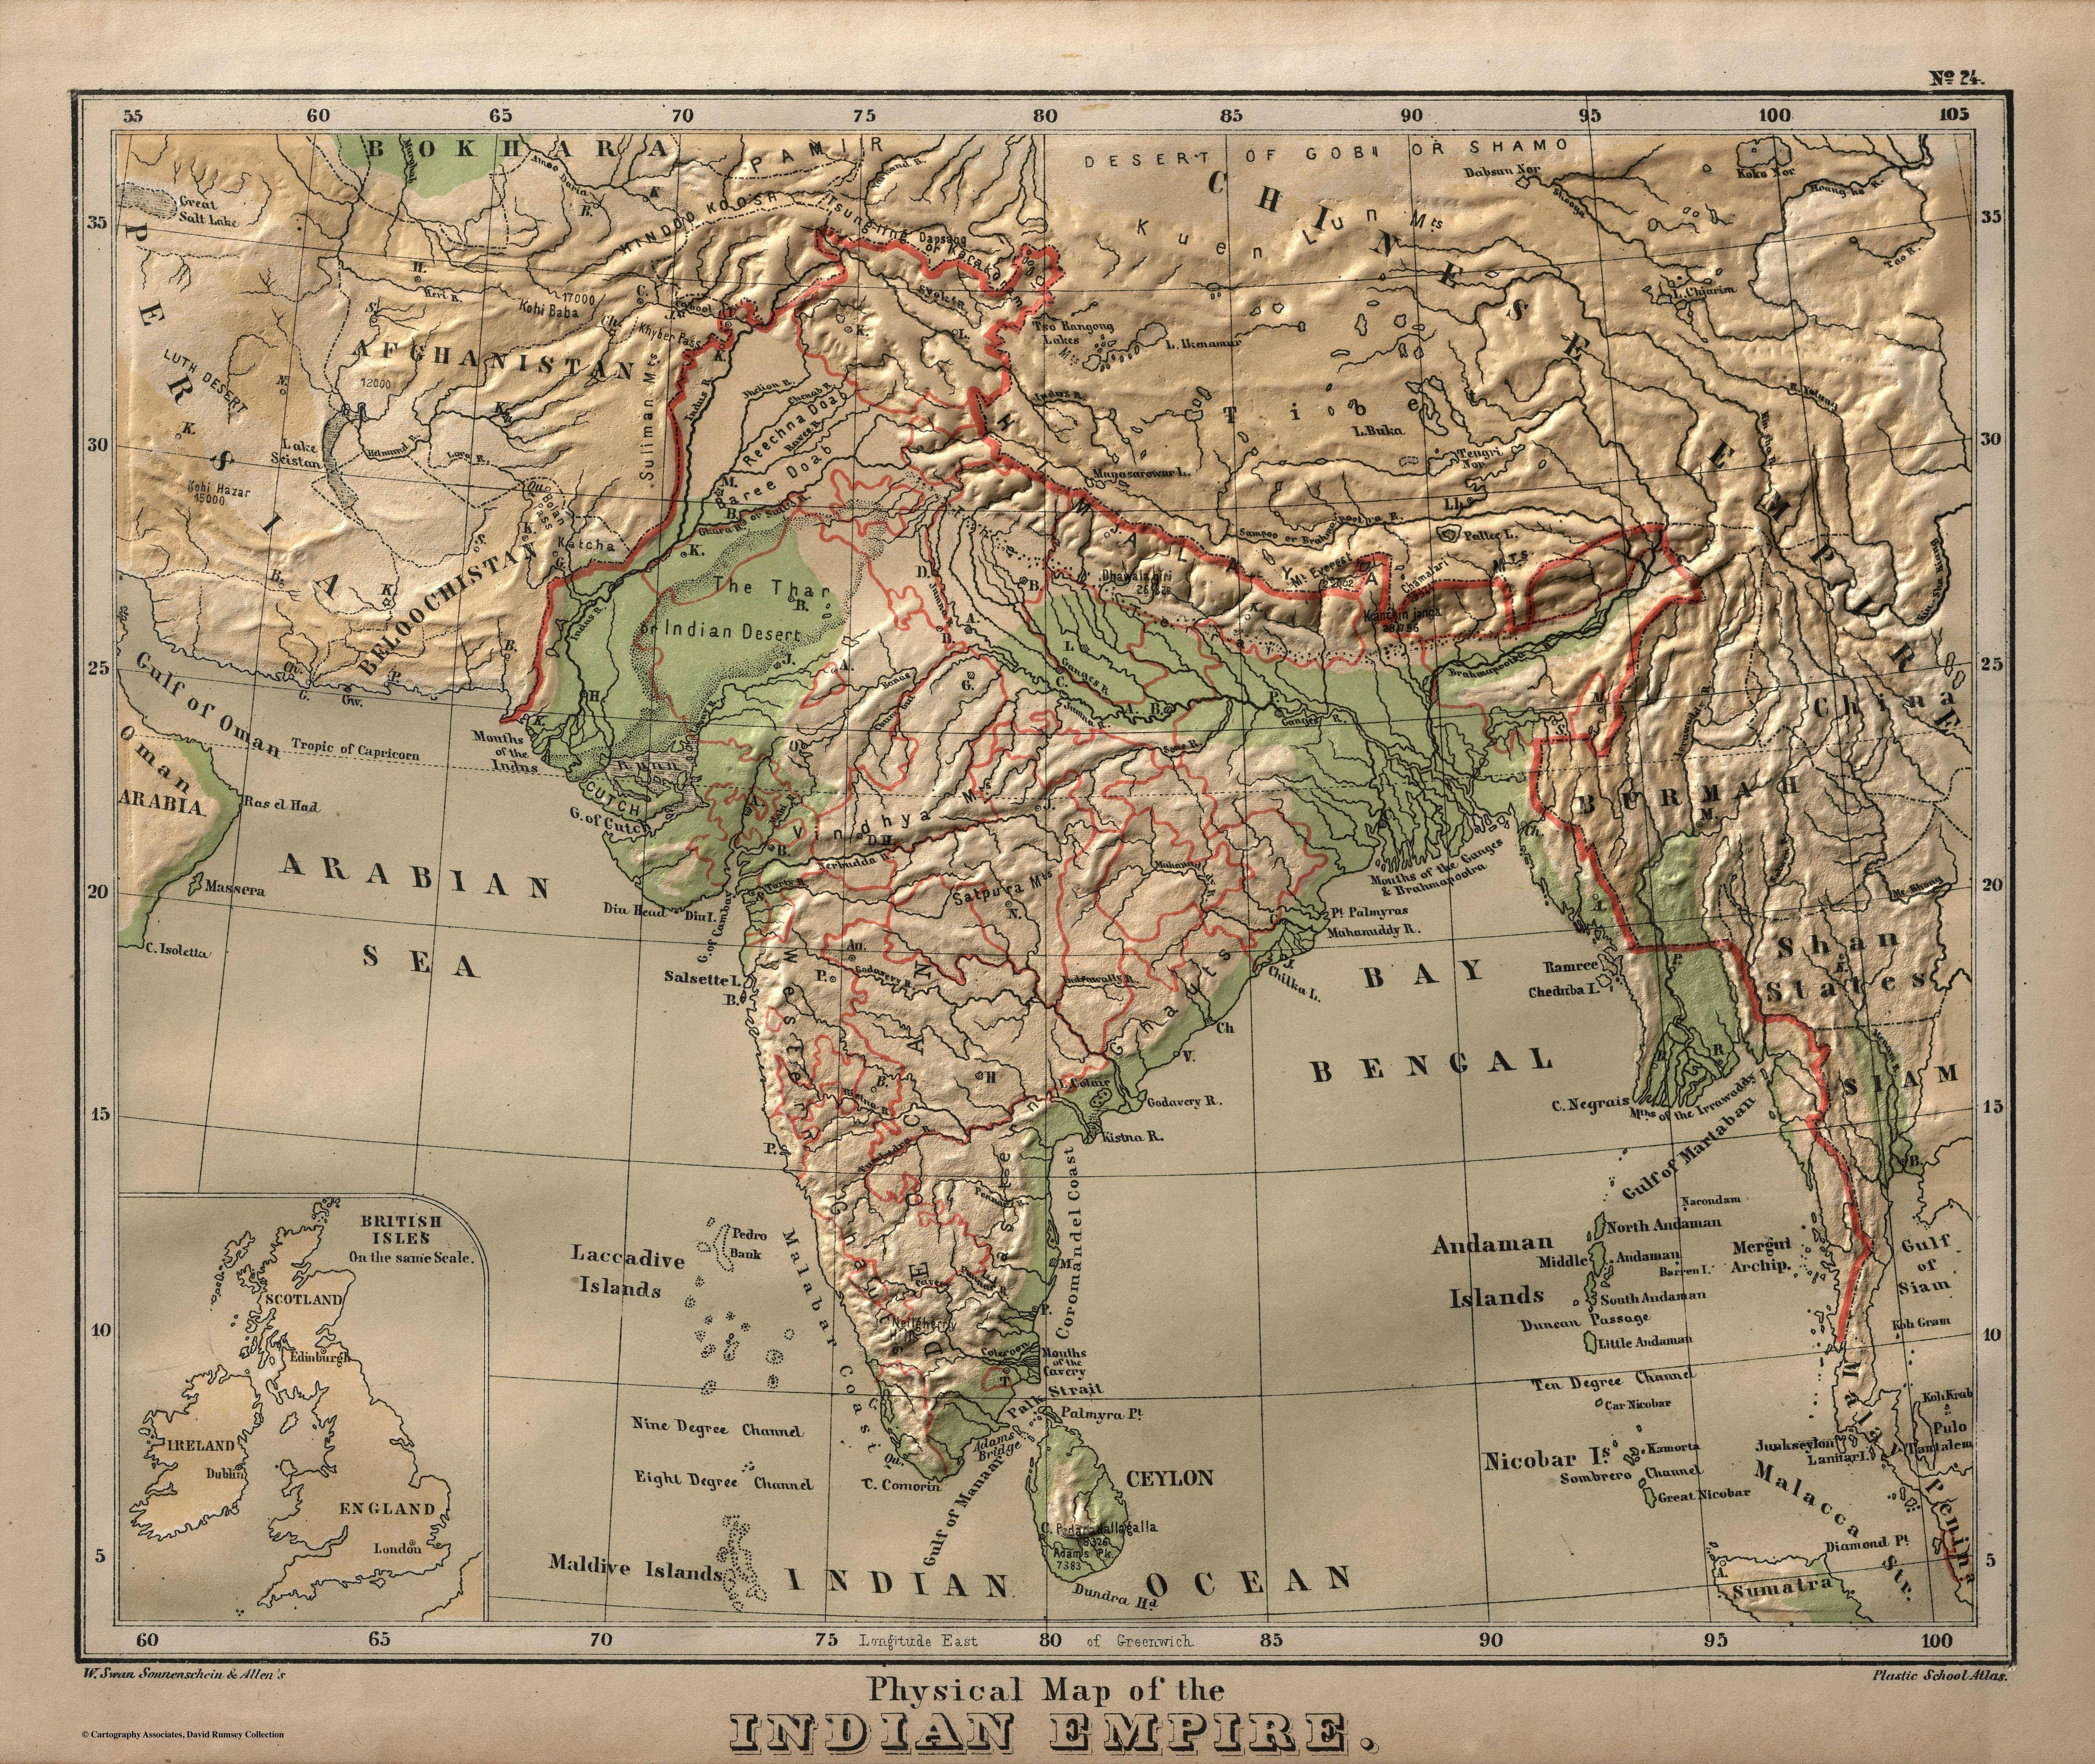 Physical Map of the Indian Empire (1880) | mapmania | Map, Map art on indian political system, indian climate map, indian political structure, india geography map, india political map, indian language map, indian caste system, indian forest map, indian compass rose, indian history map, indian people map, indian tourist map, indian cities map, indian culture map, indian blank map, ancient india map, indian map outline, indian science map, indian food map, indian social structure,